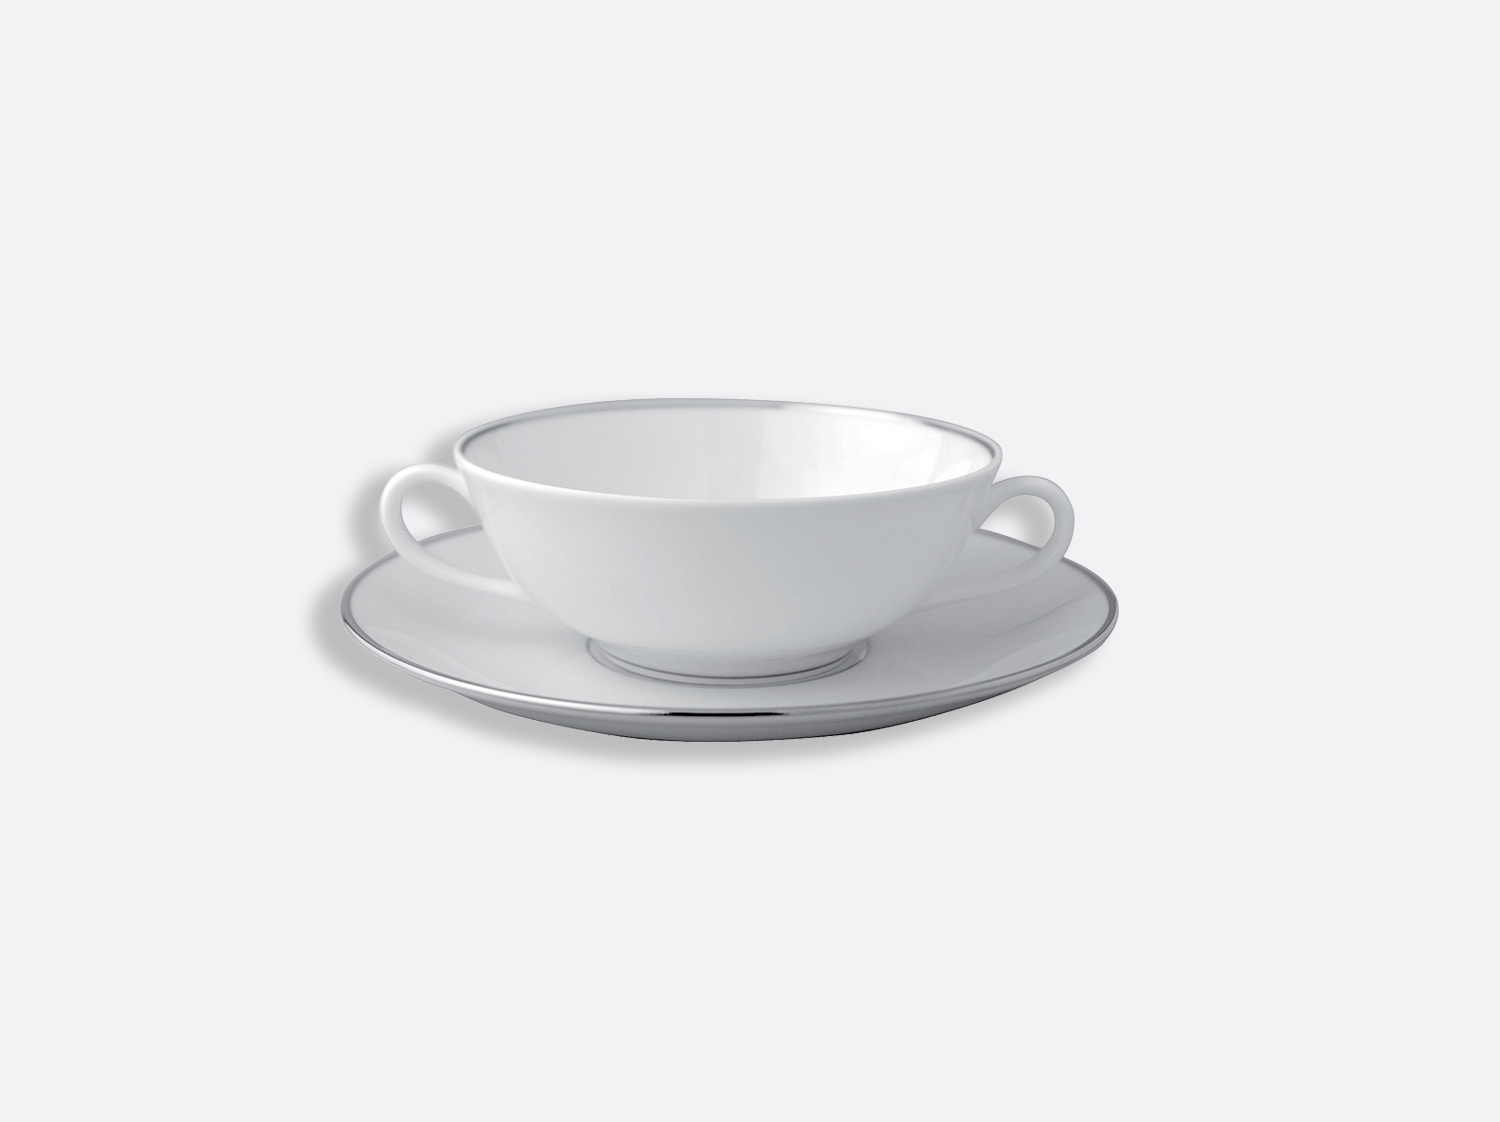 Bol et soucoupe à bouillon 15 cl en porcelaine de la collection Cristal Bernardaud